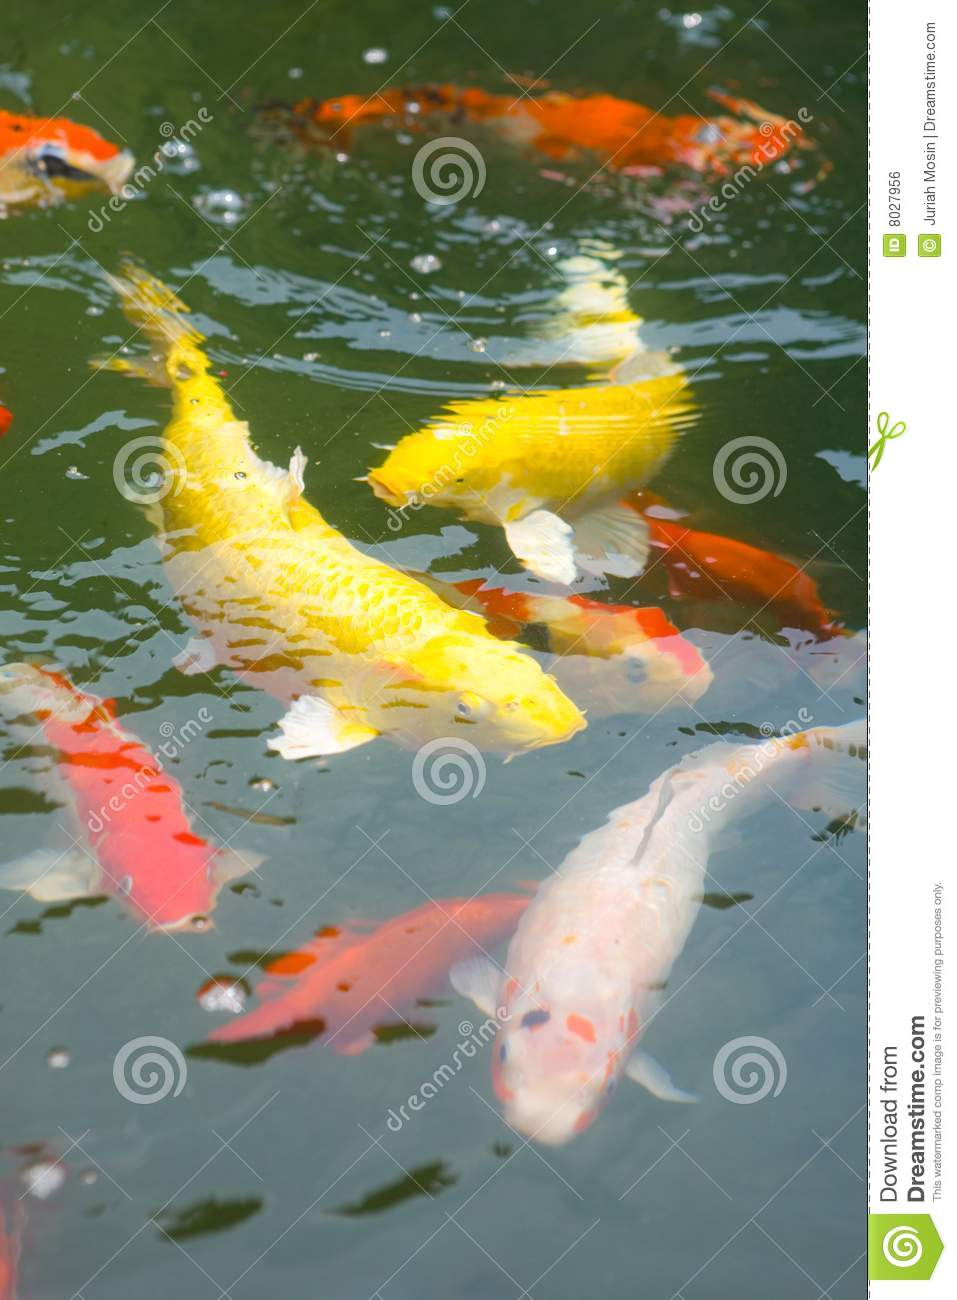 Japanese koi carp in a pond royalty free stock image for Koi carp fish pond